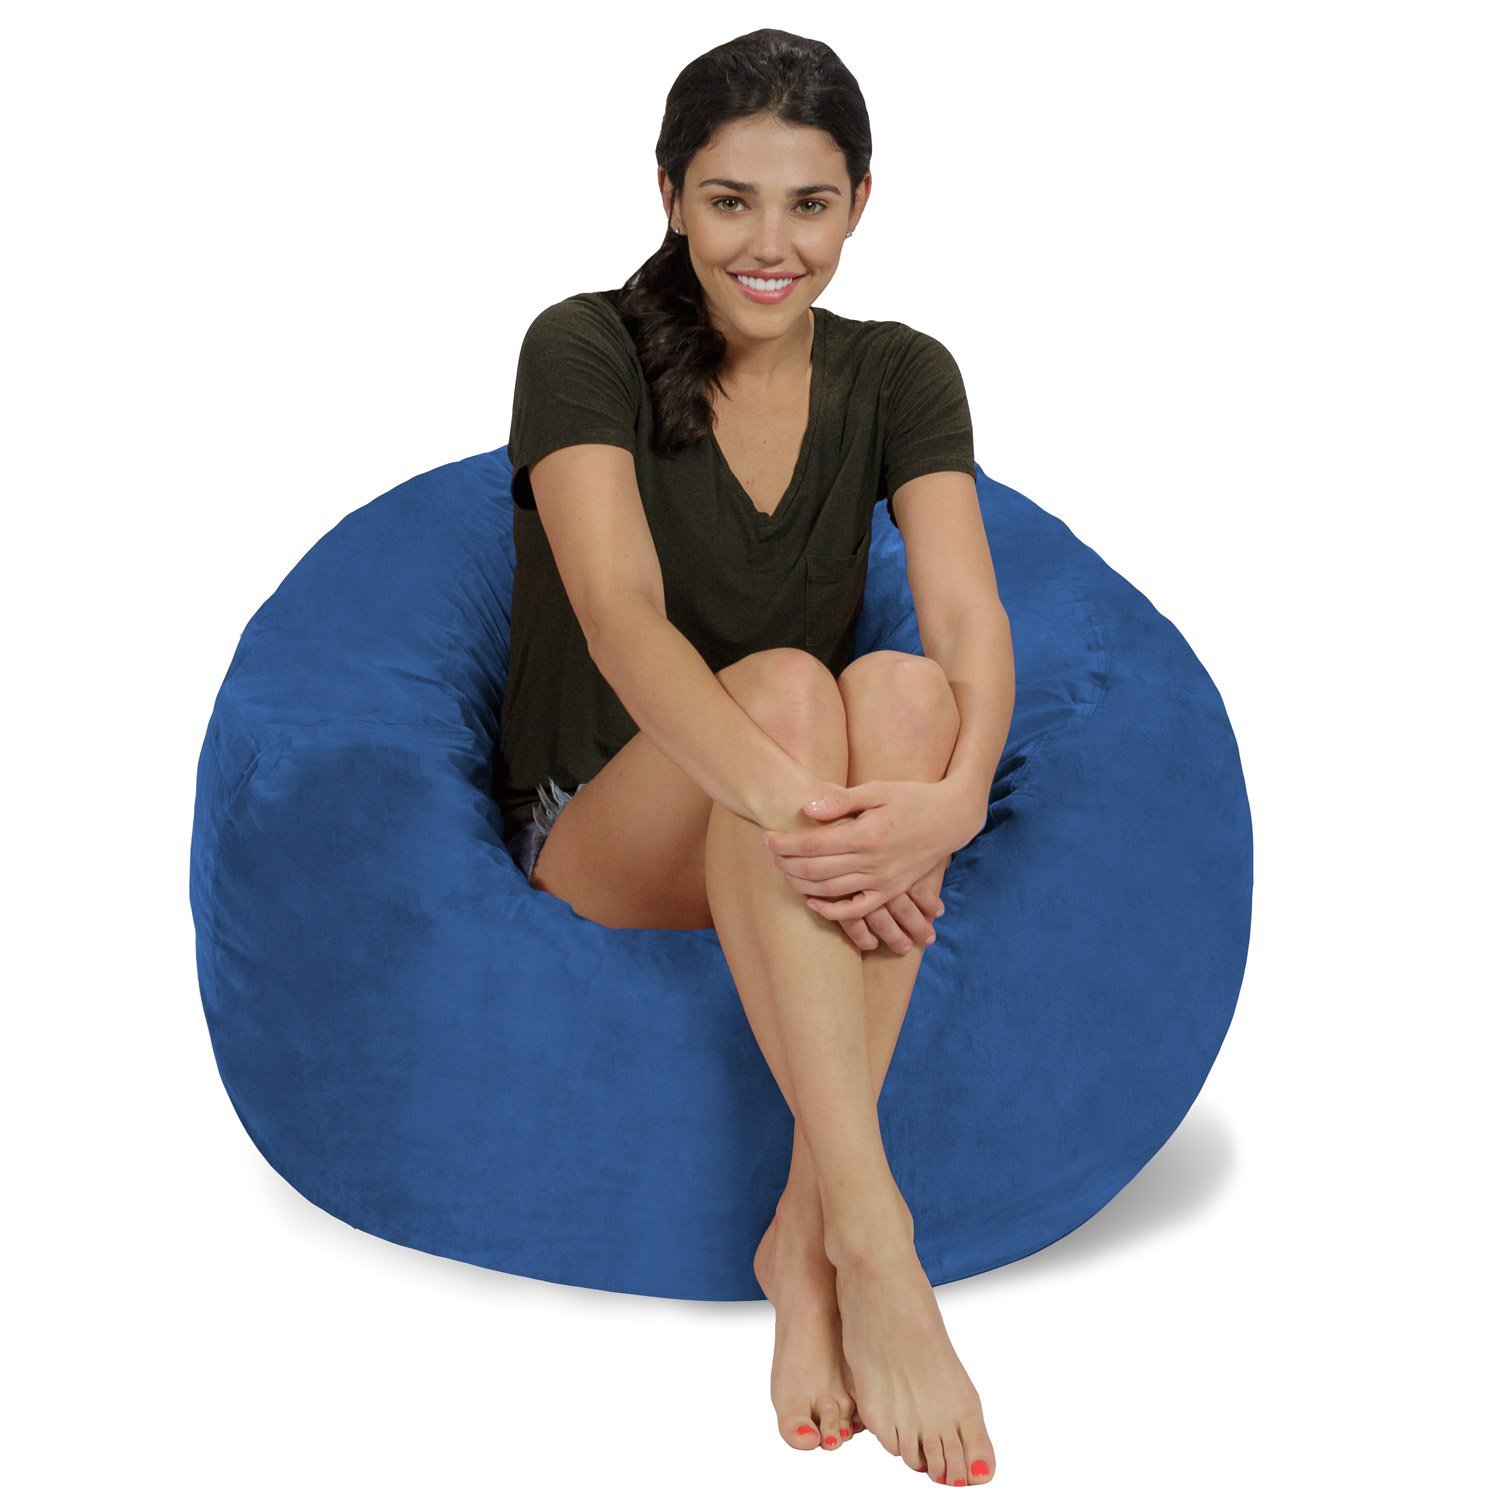 The Beanbag Chair That Almost KILLED A SALE